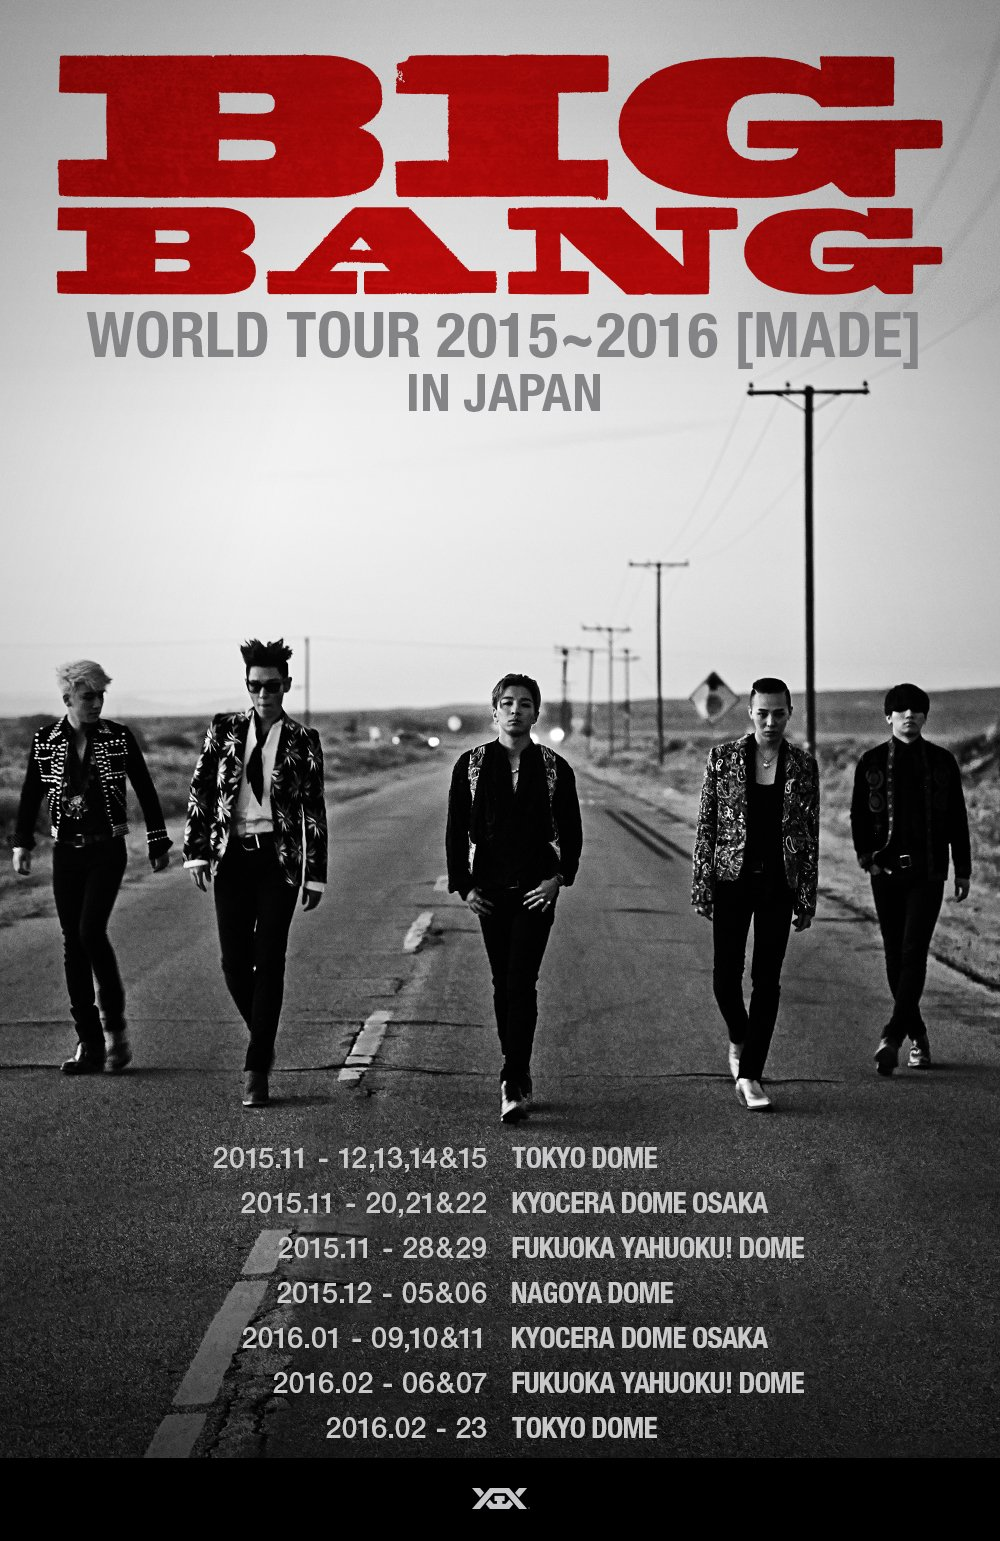 BIGBANG Japan Tour 2015-2016